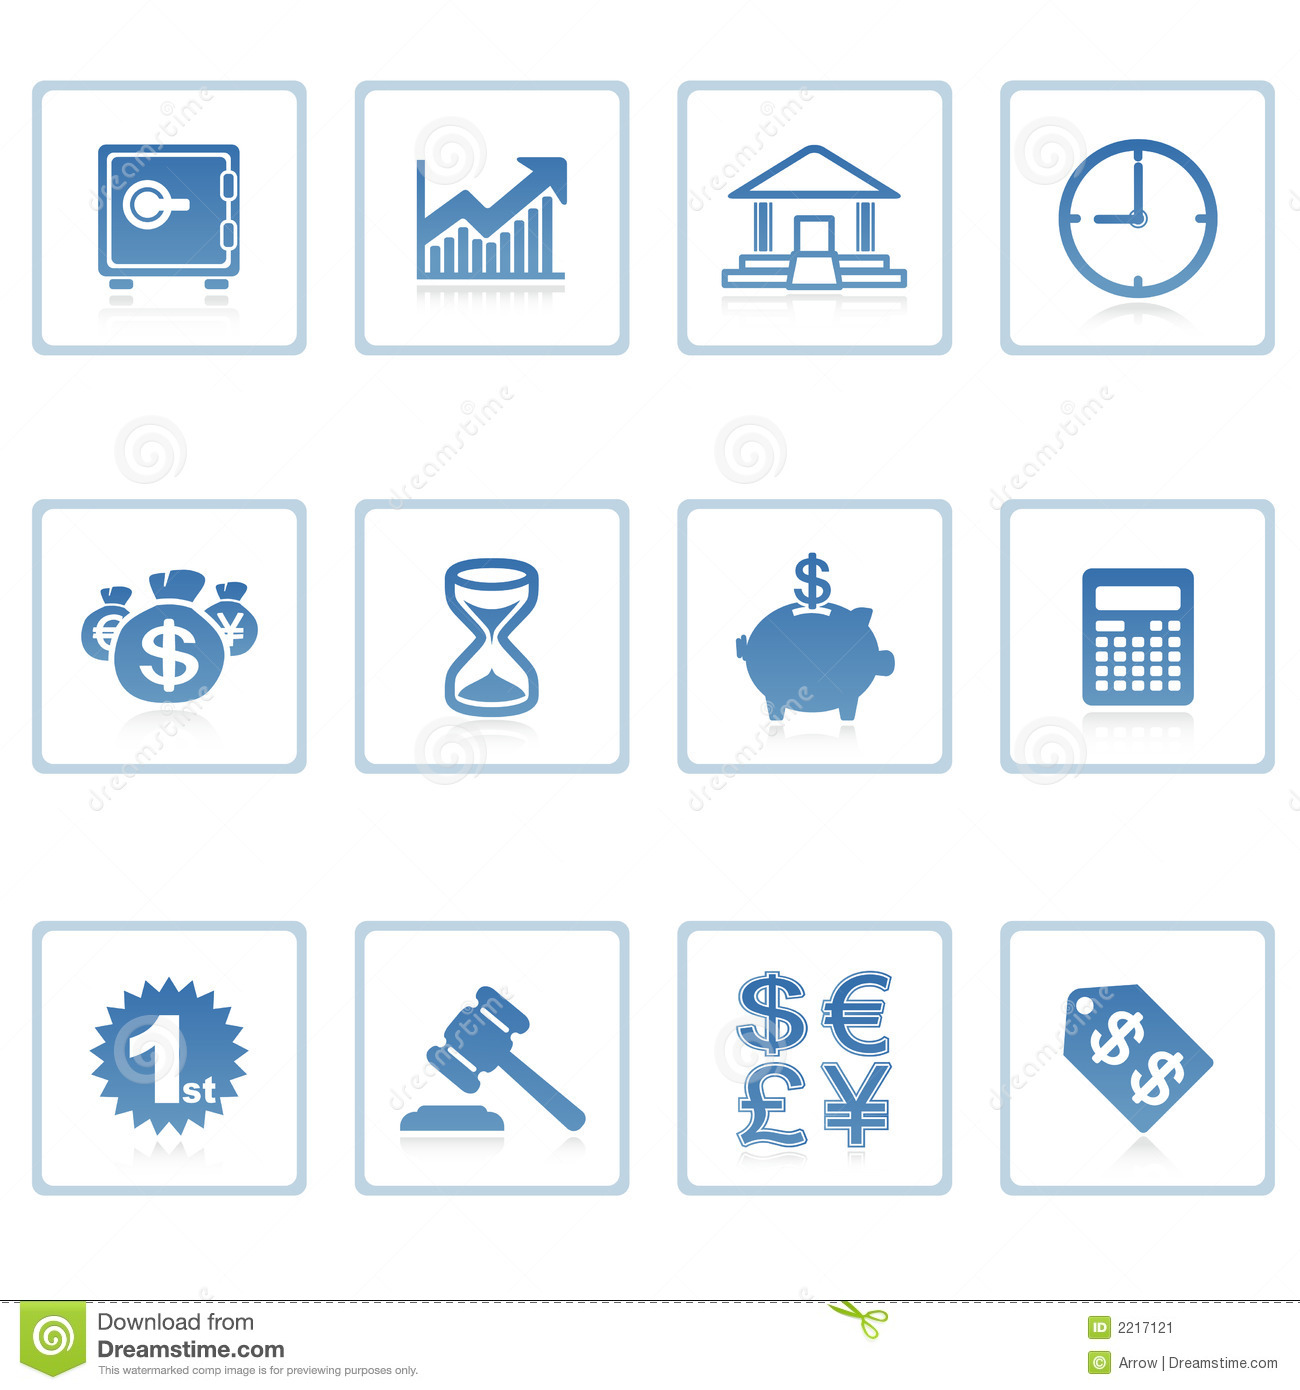 Finance: Business And Finance Icon Stock Illustration. Image Of